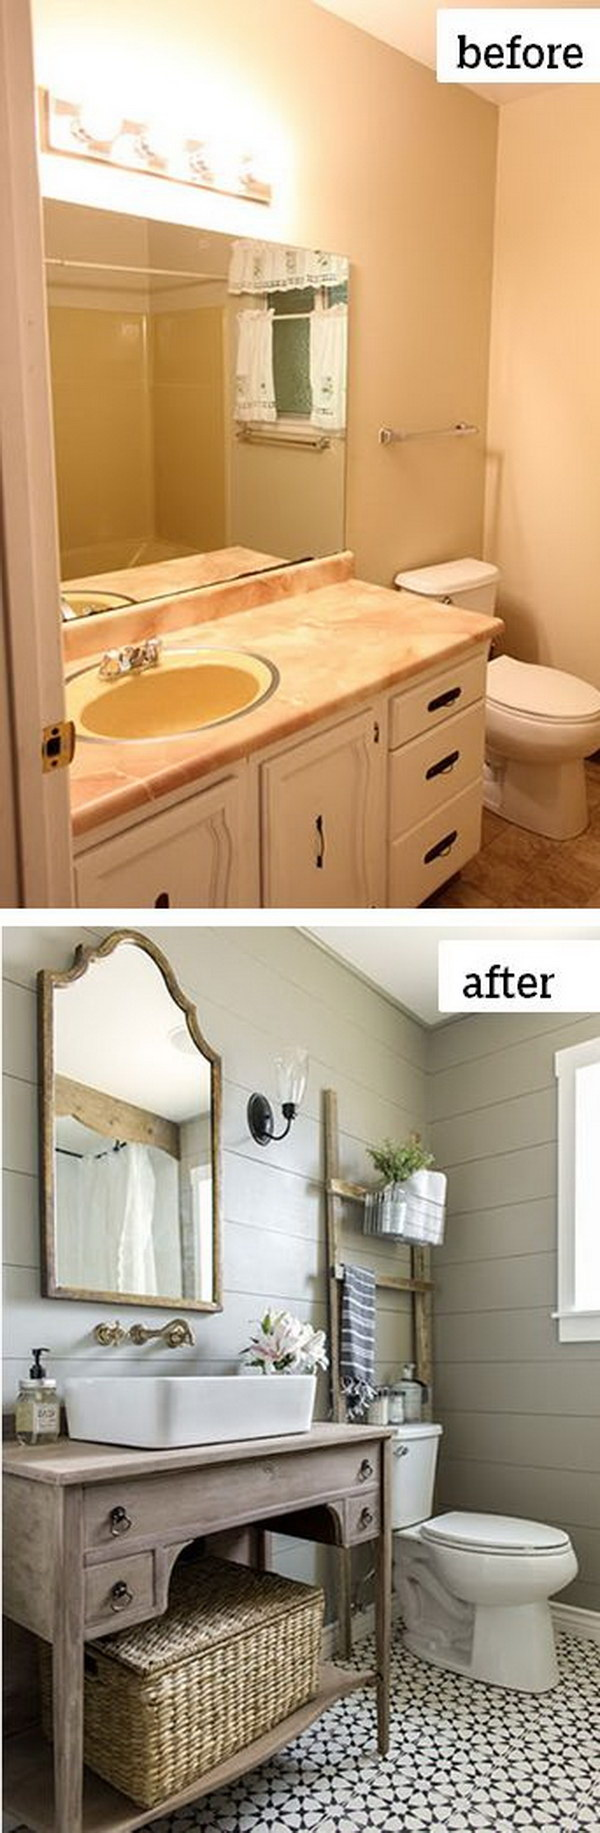 49 Most Beautiful Before and After Bathroom Makeovers